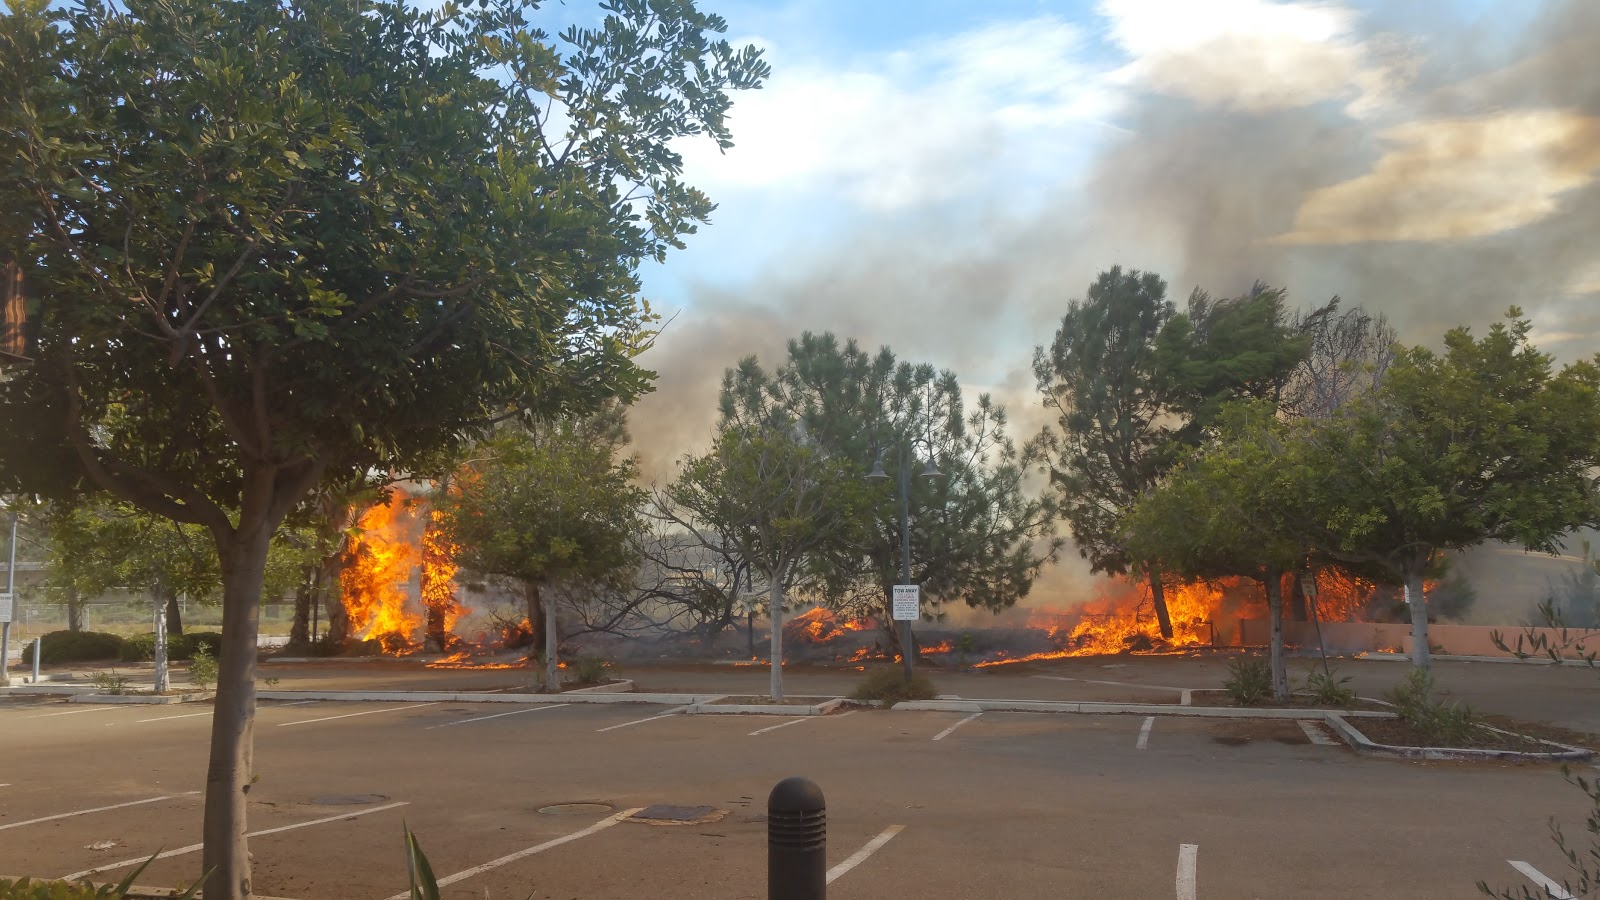 Fire in a small restaurant  parking lot.